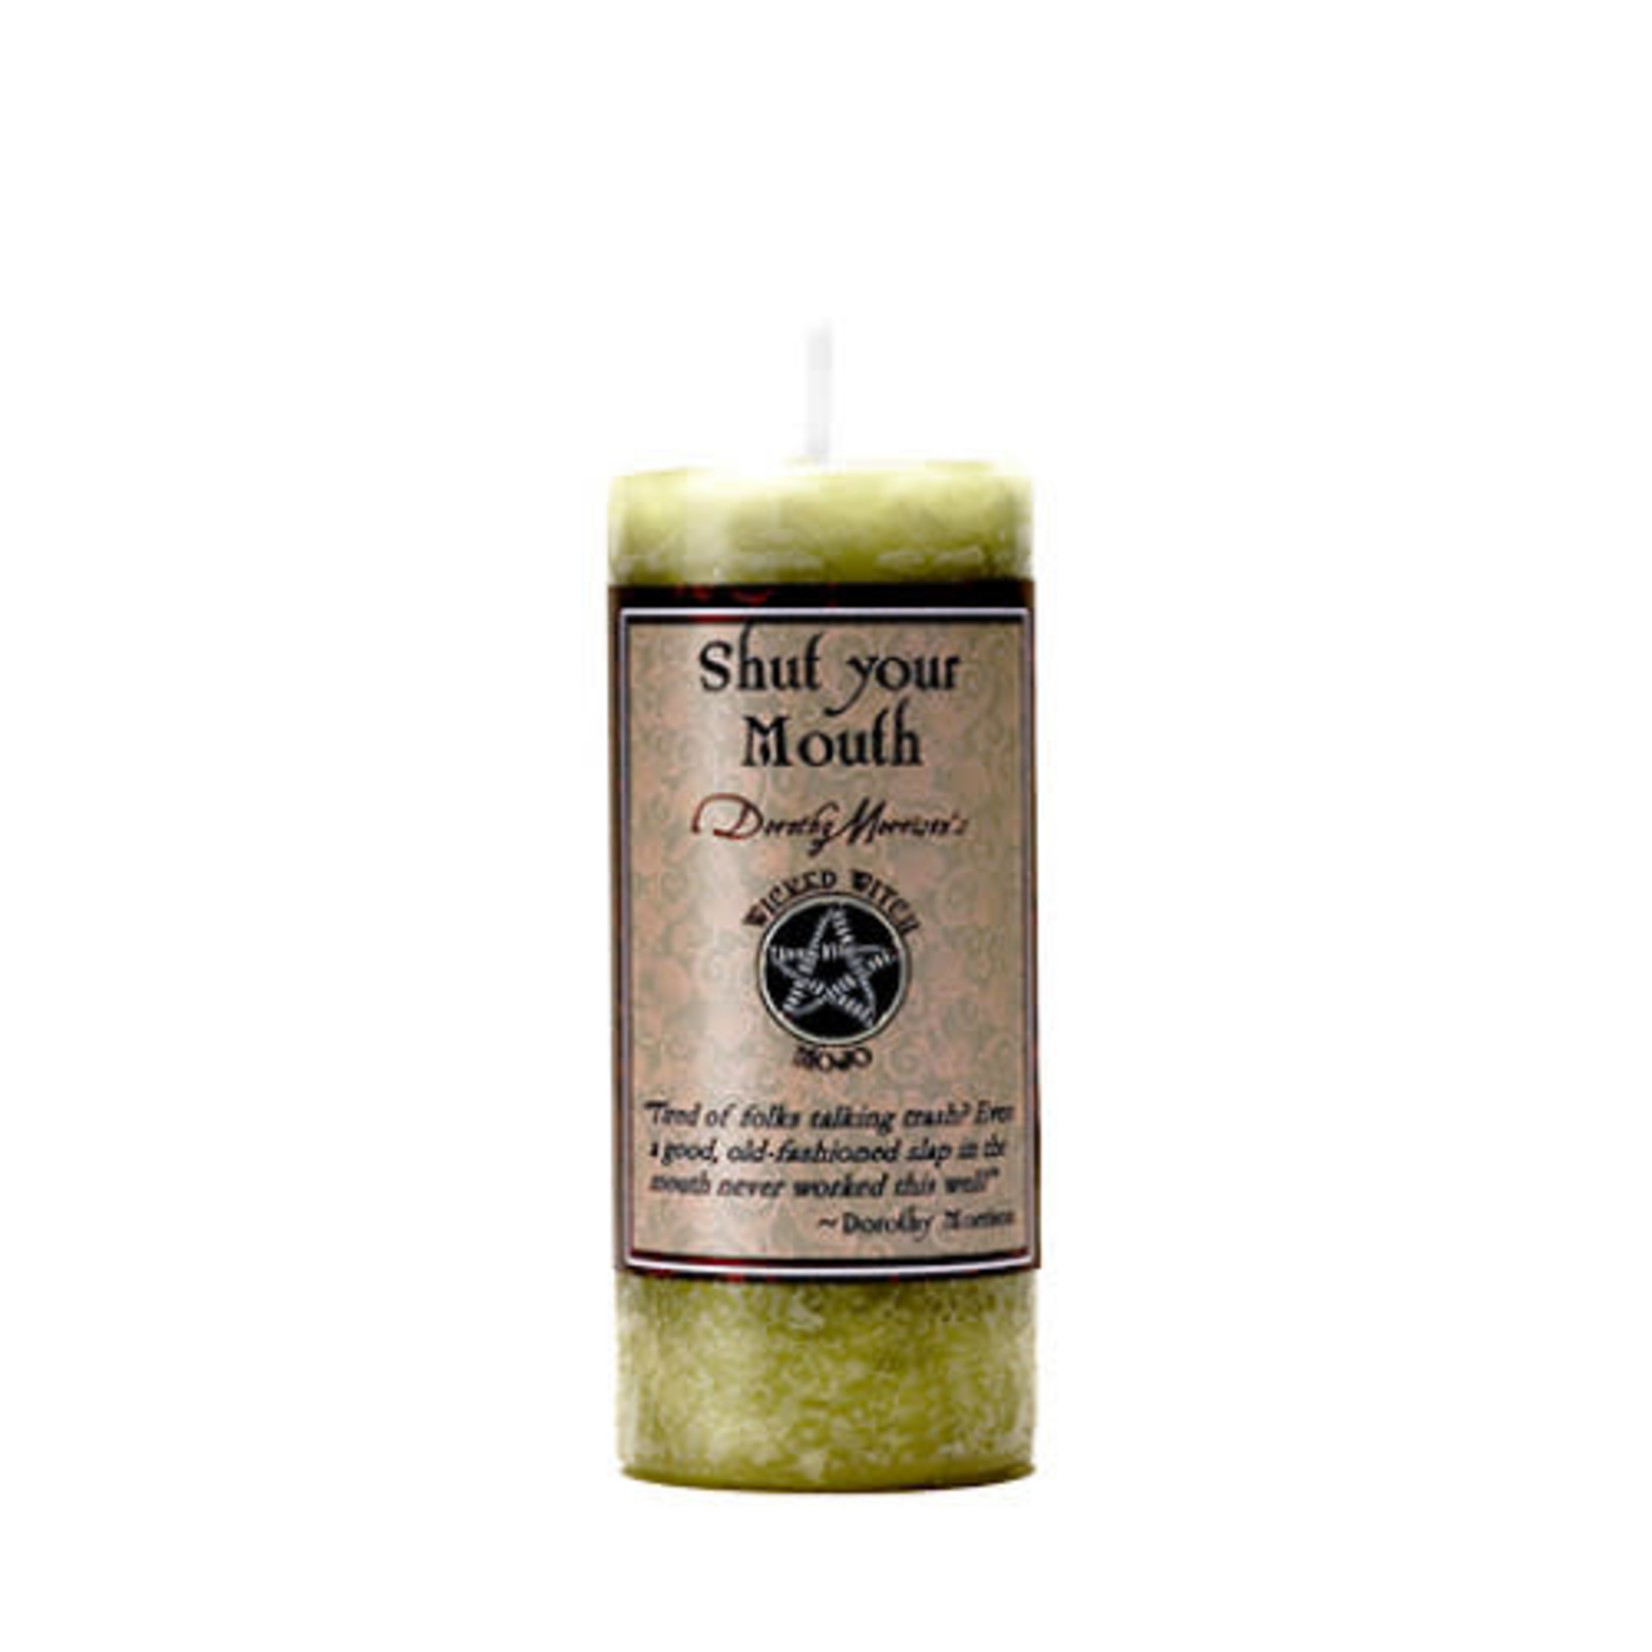 Pillar Candle Wicked Witch Mojo Shut Your Mouth